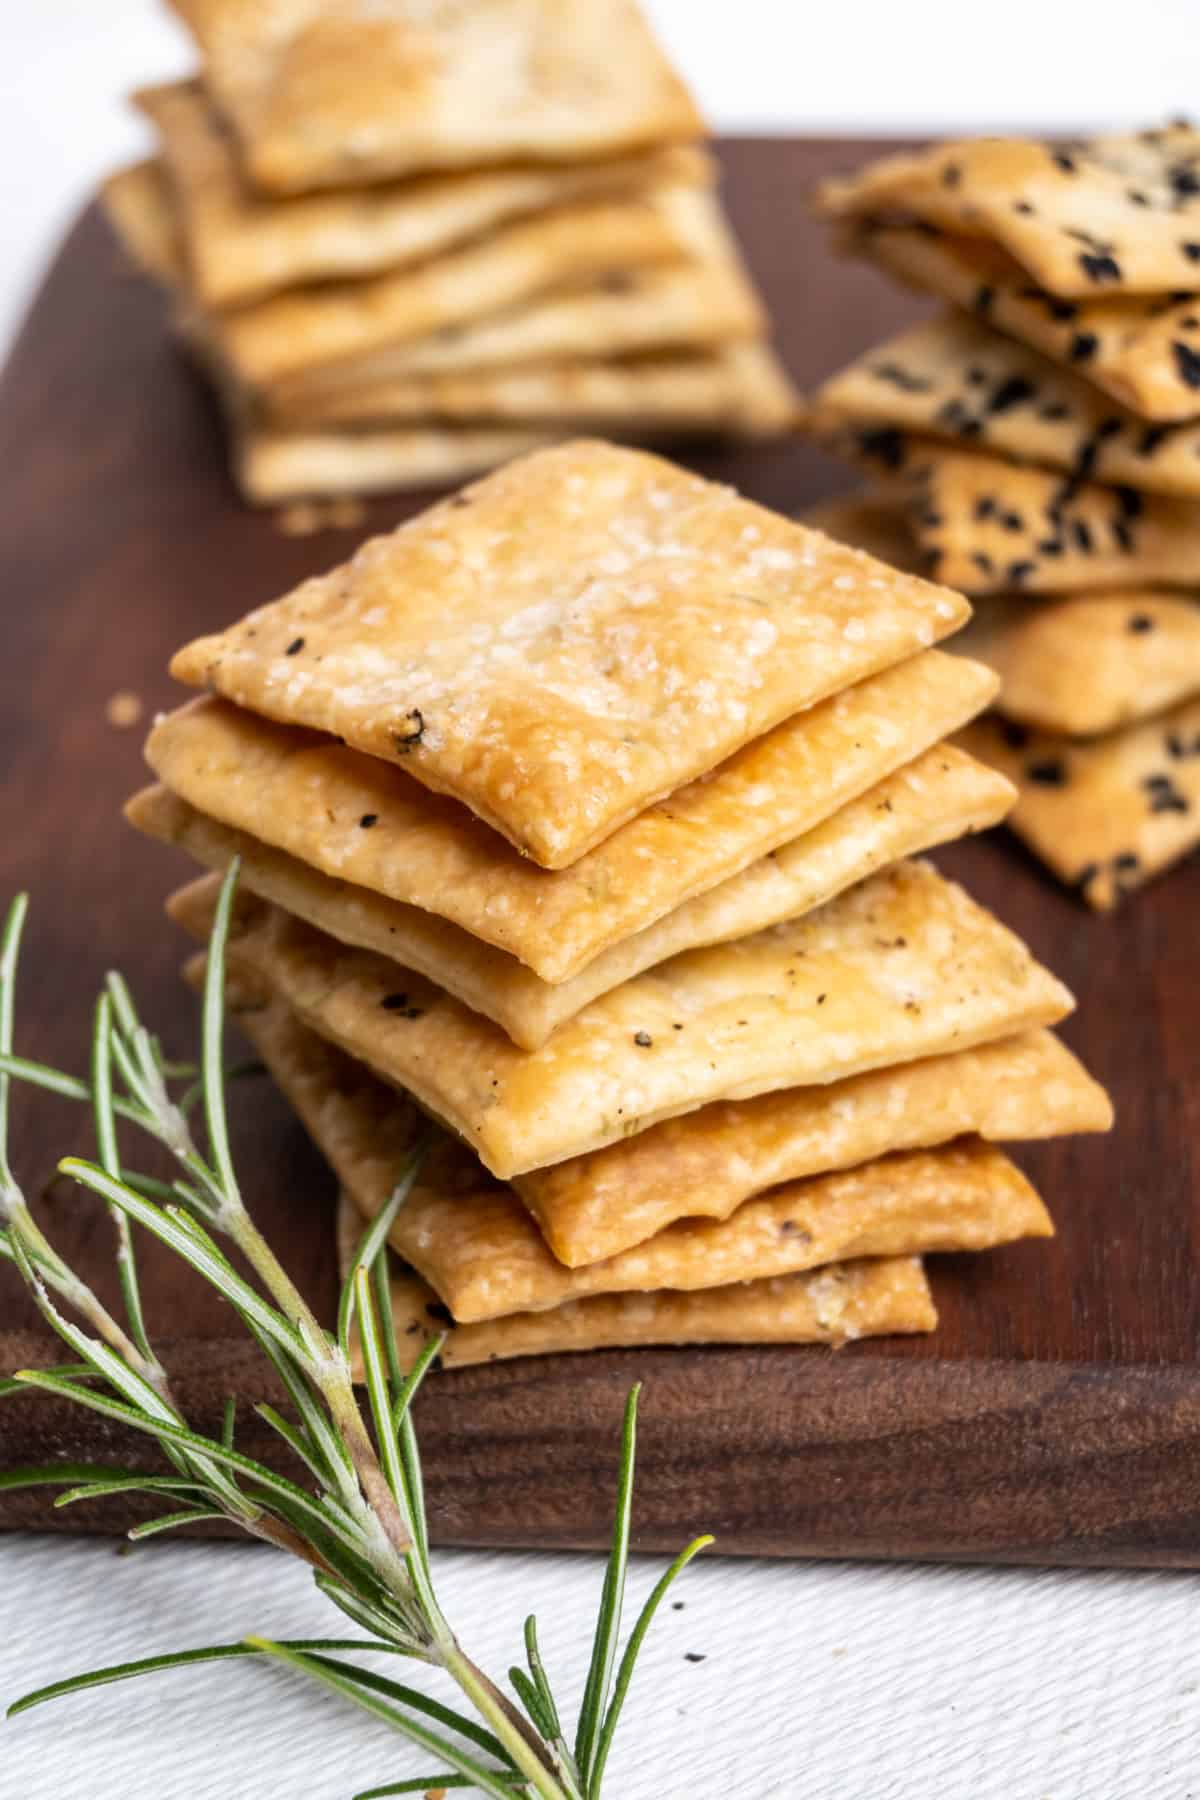 Stacks of homemade rosemary crackers, some topped with ground pepper and sea salt, some with sesame and nigella seeds.